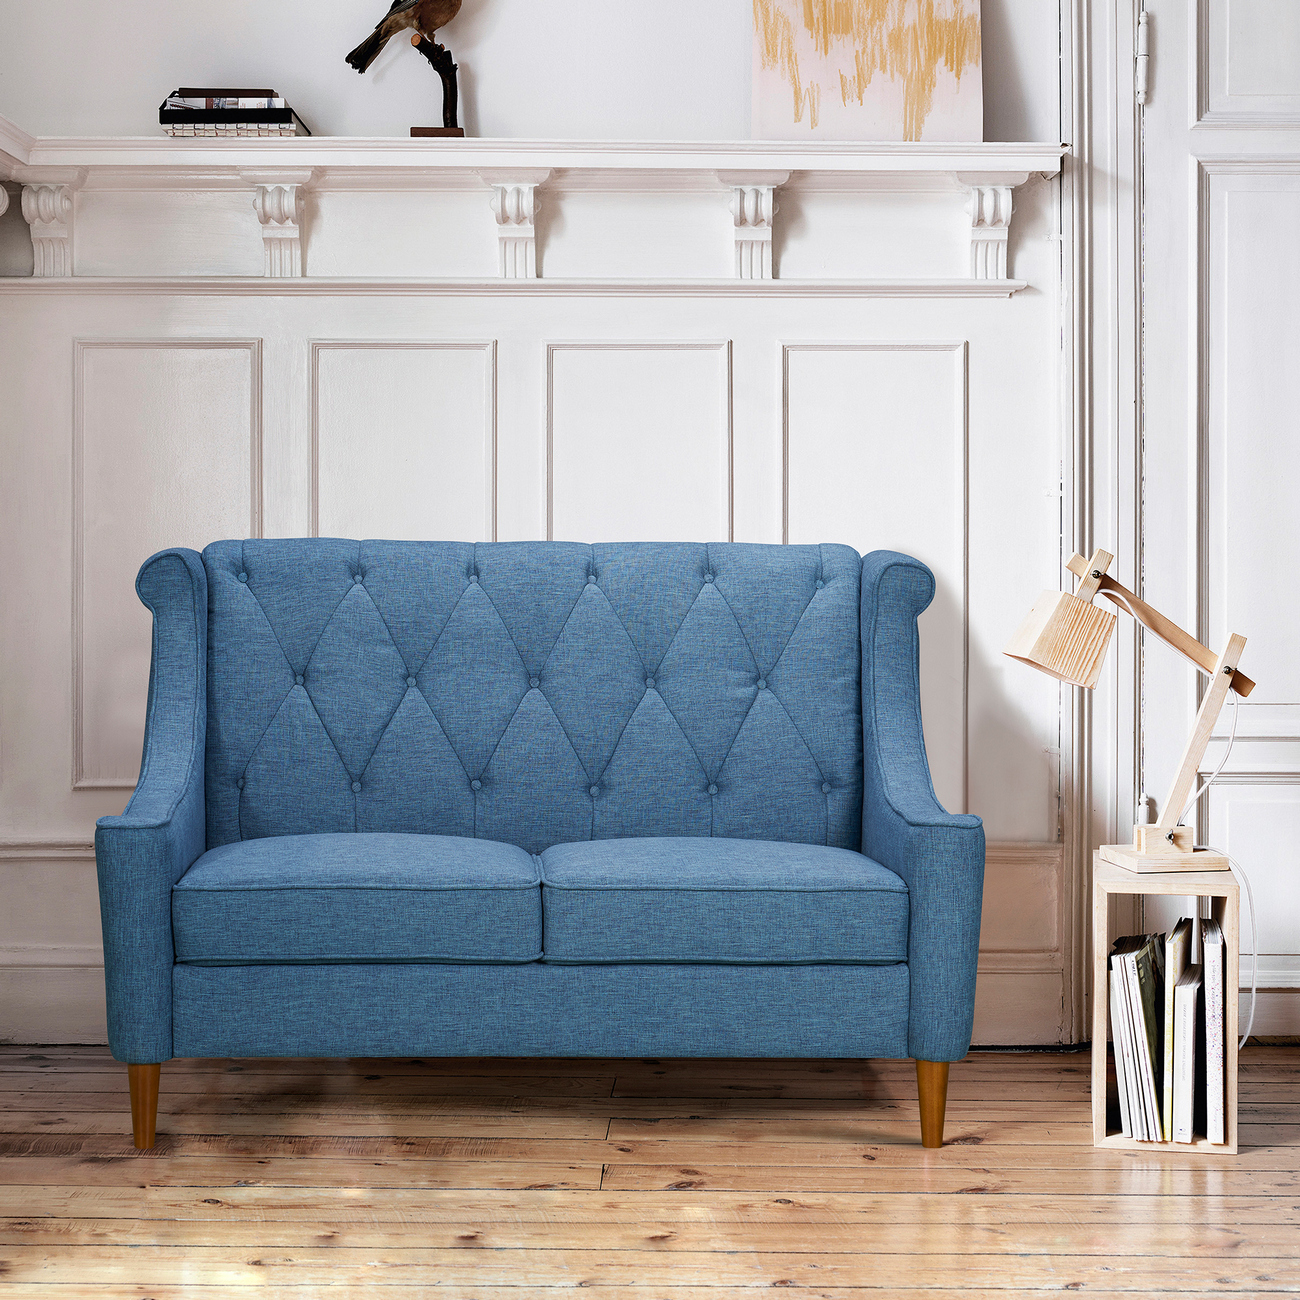 Armen Living Luxe Mid Century Loveseat Champagne Wood Finish Blue Fabric